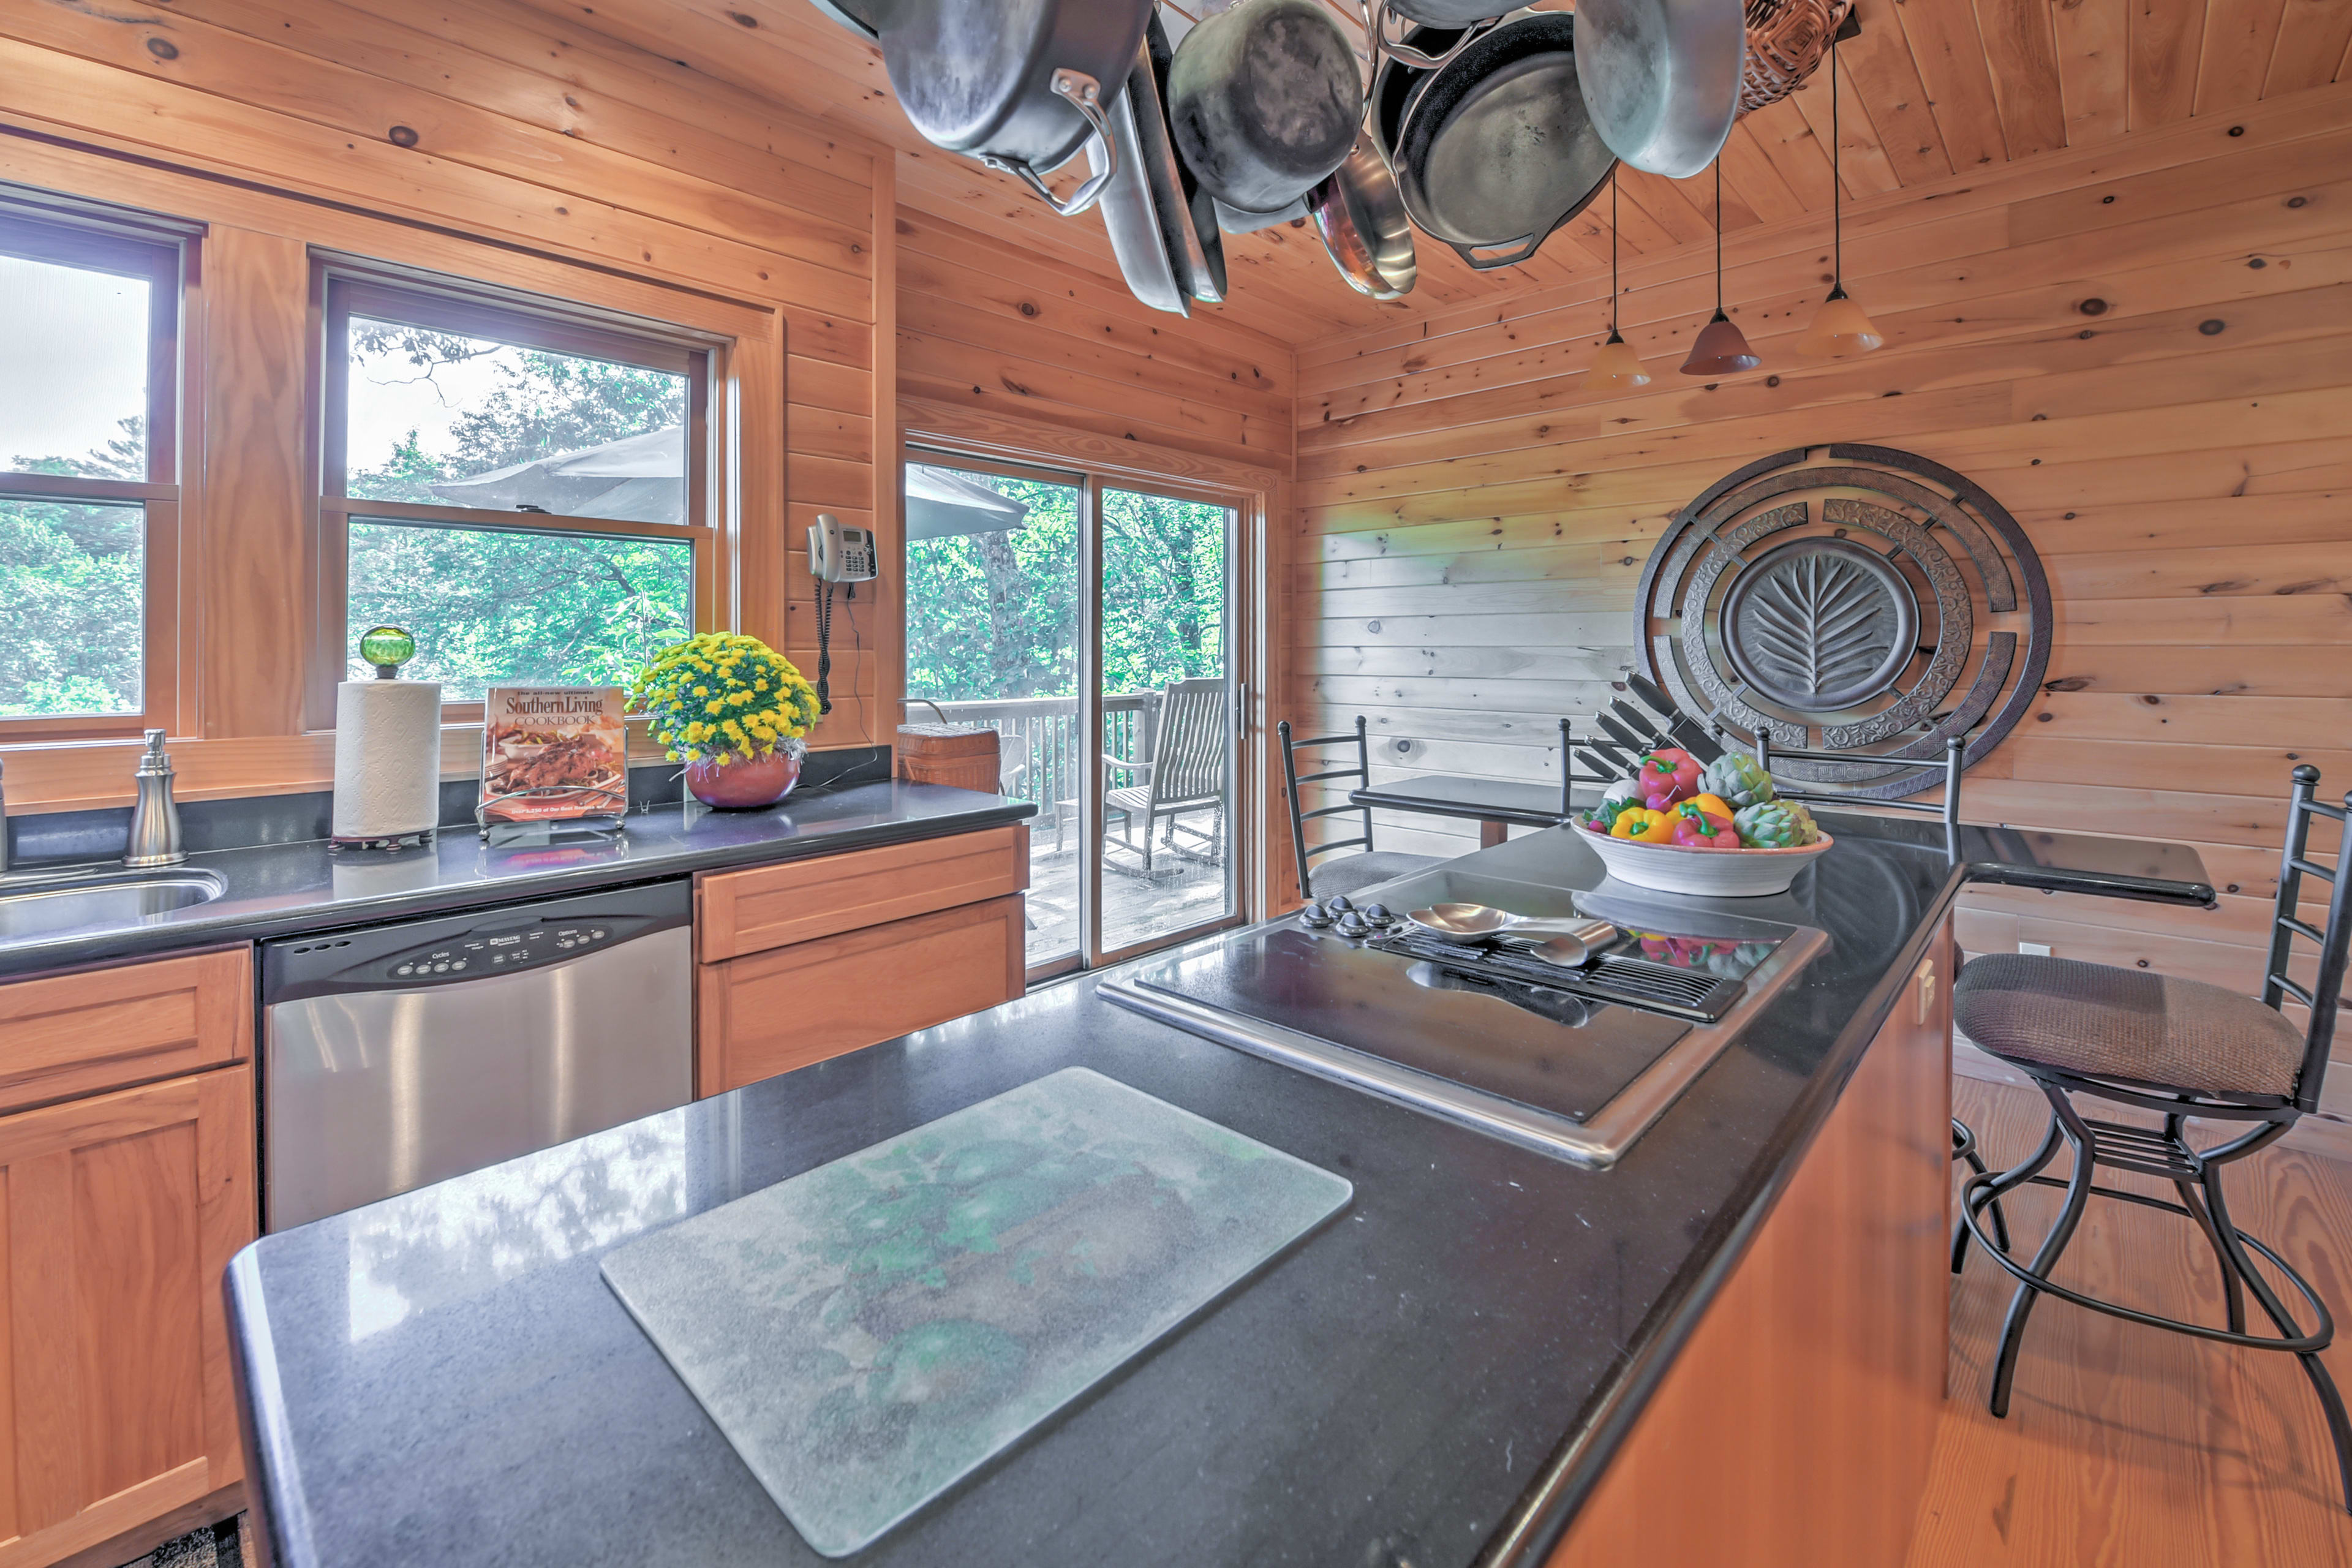 An expansive fully equipped kitchen has everything you'll need to whip up meals.